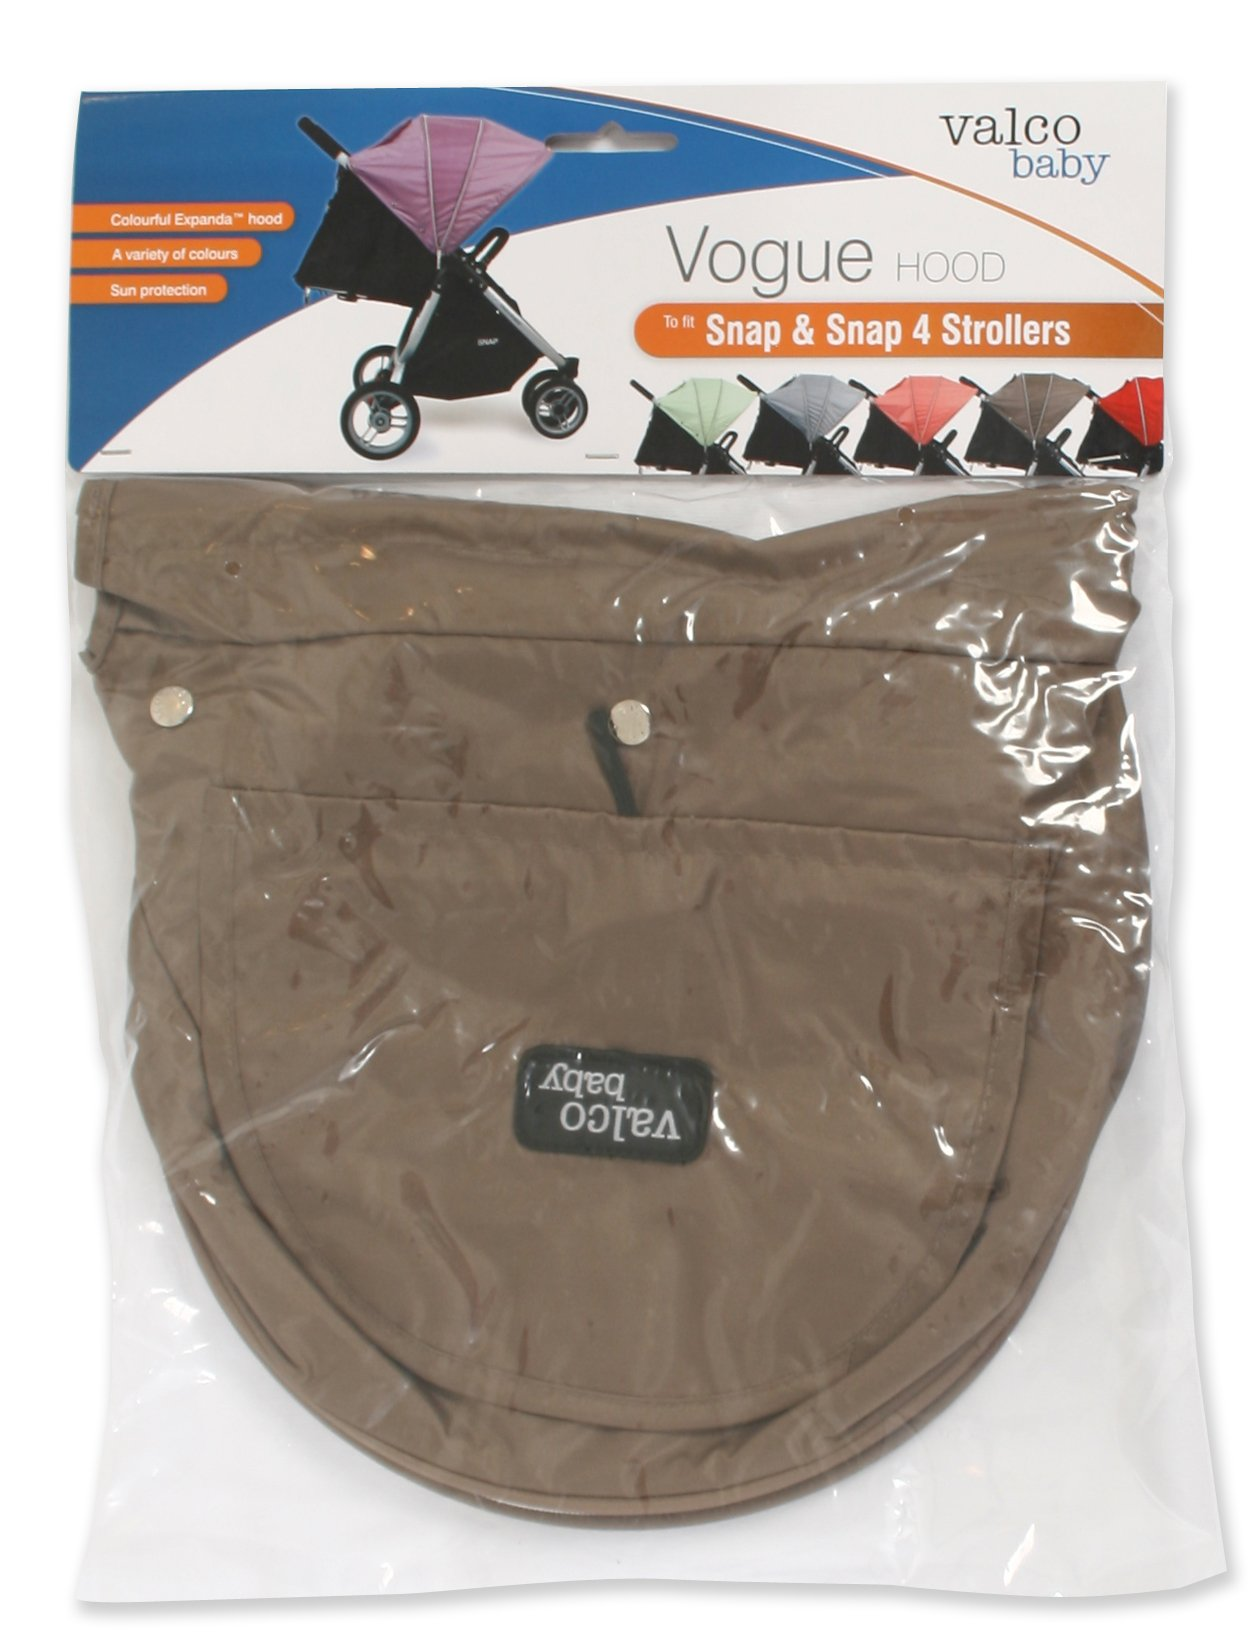 Valco Baby Snap & Snap4 Vogue Set (Hood, Bootie, Harness Covers) (Spice)